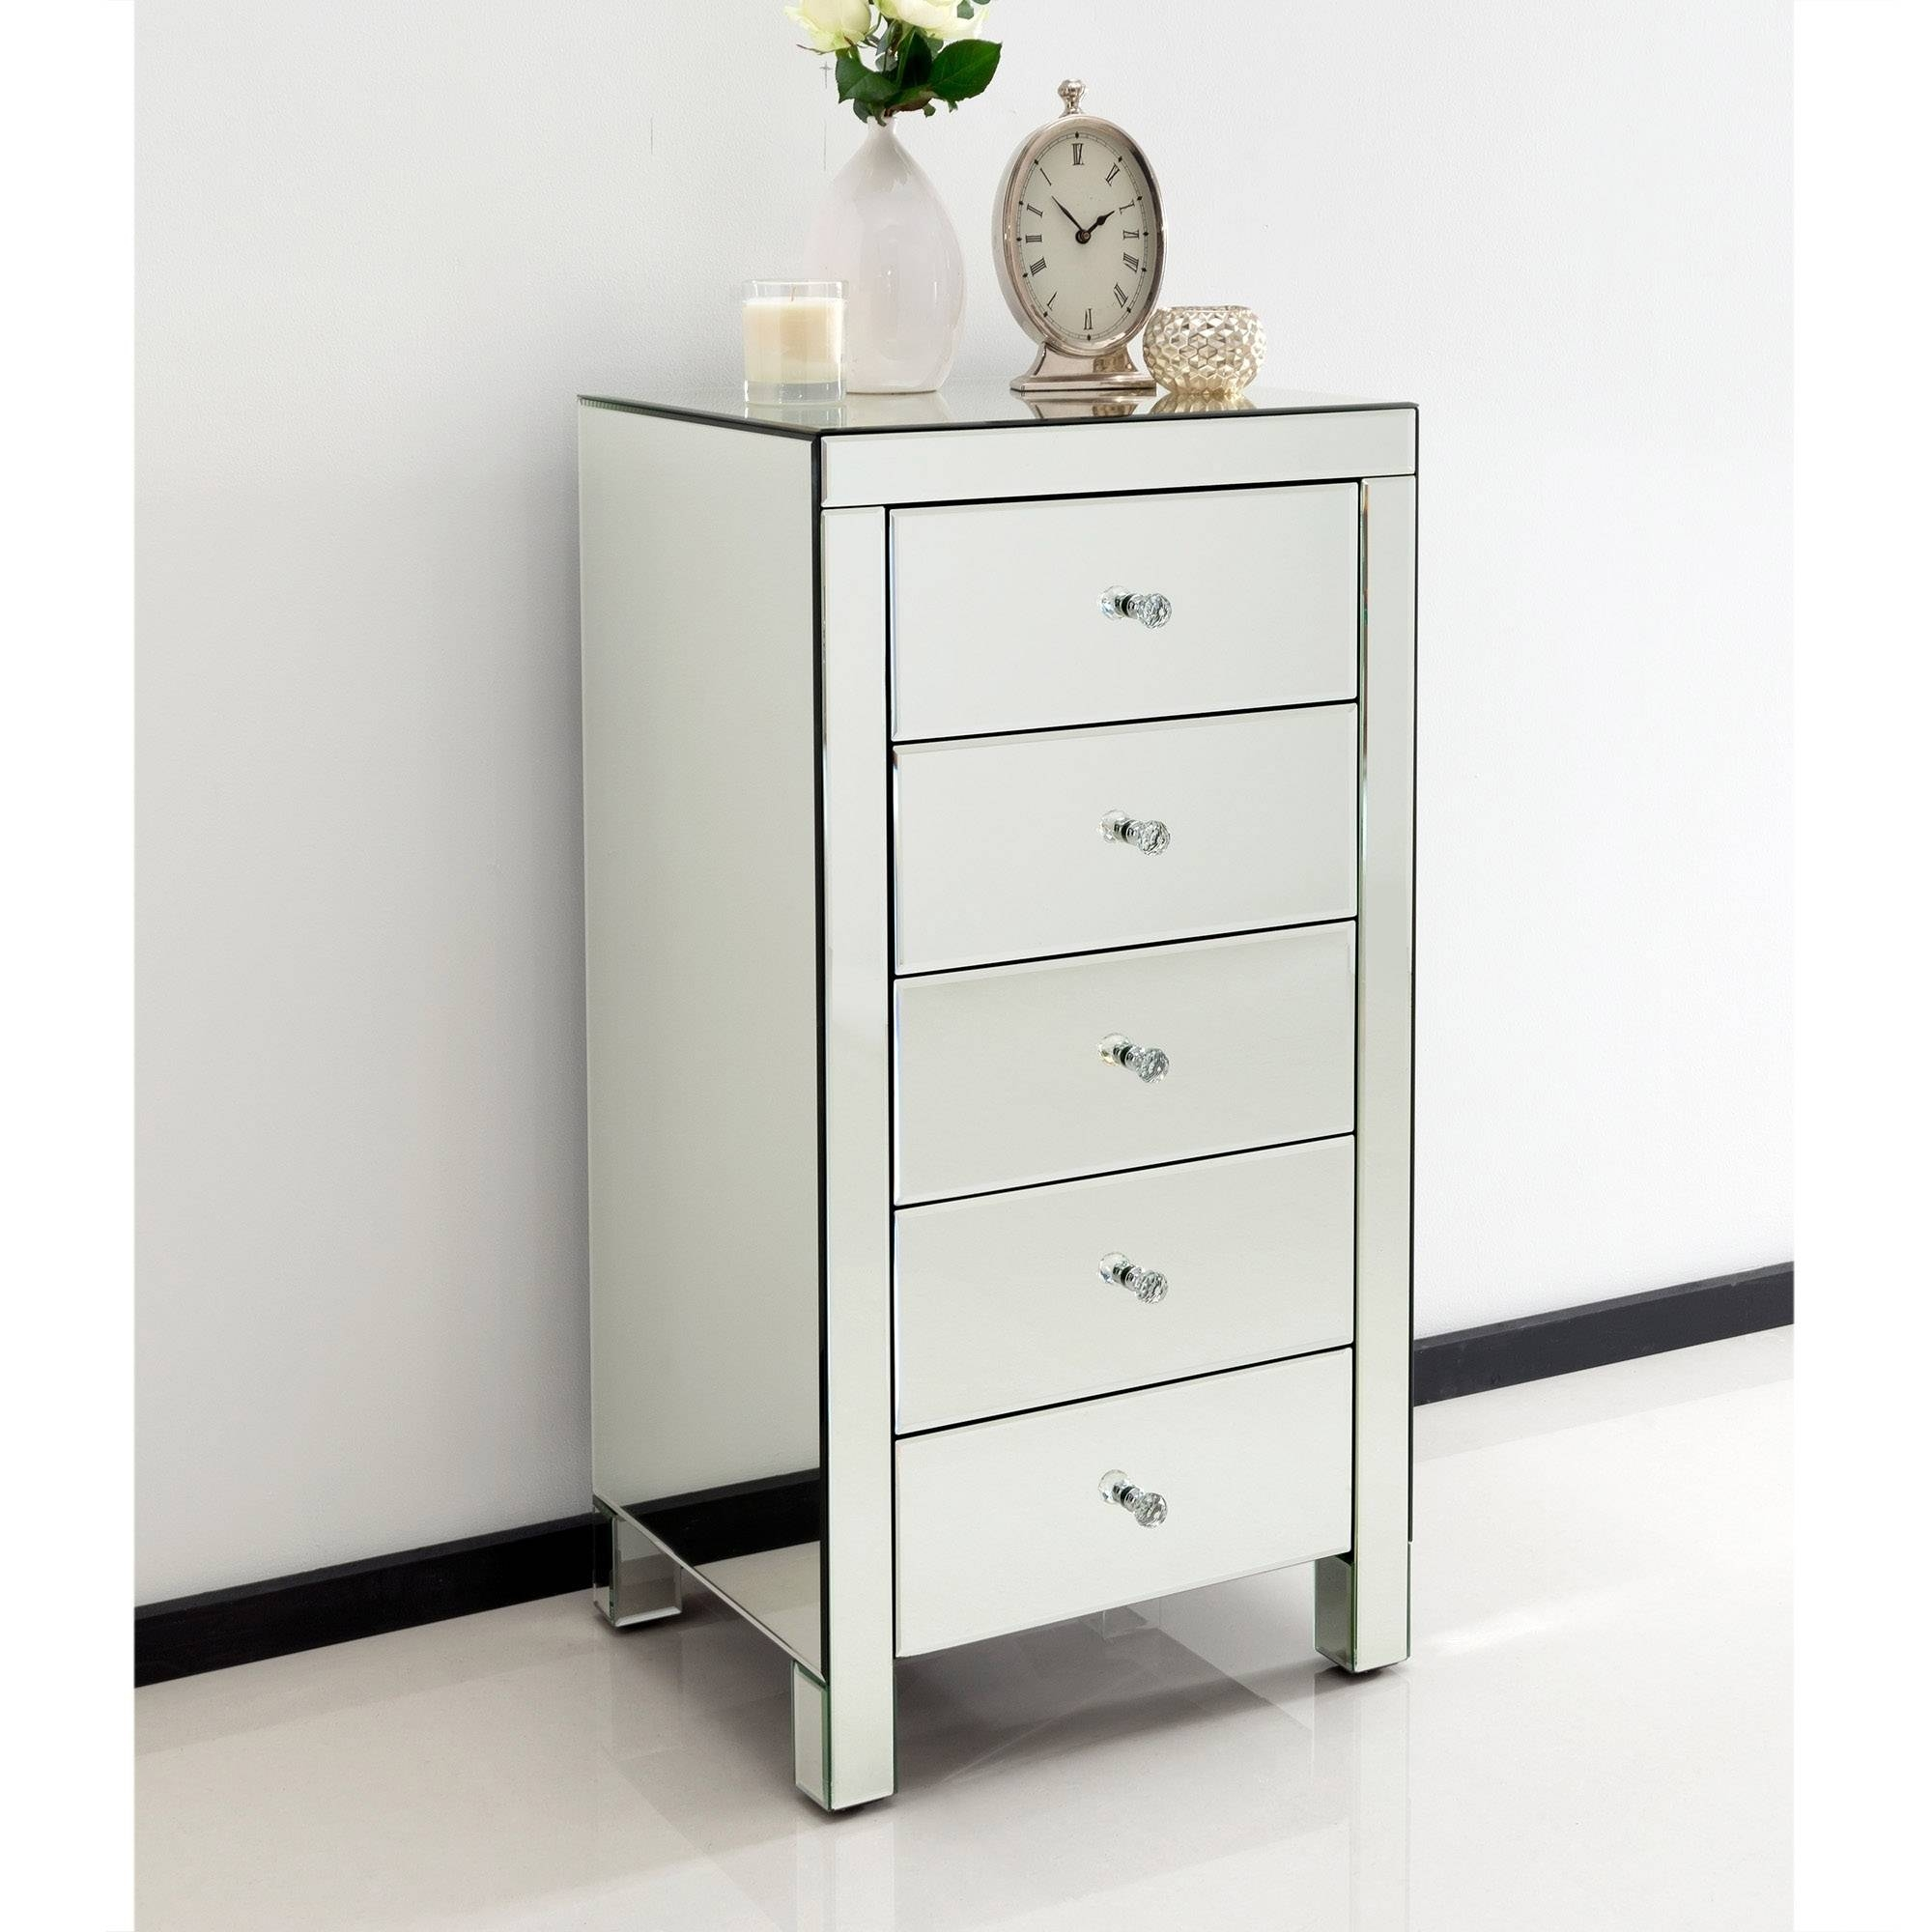 Romano Crystal Mirrored Tallboy Chest | Venetian Mirrored Furniture pertaining to Venetian Mirrored Chest Of Drawers (Image 16 of 25)